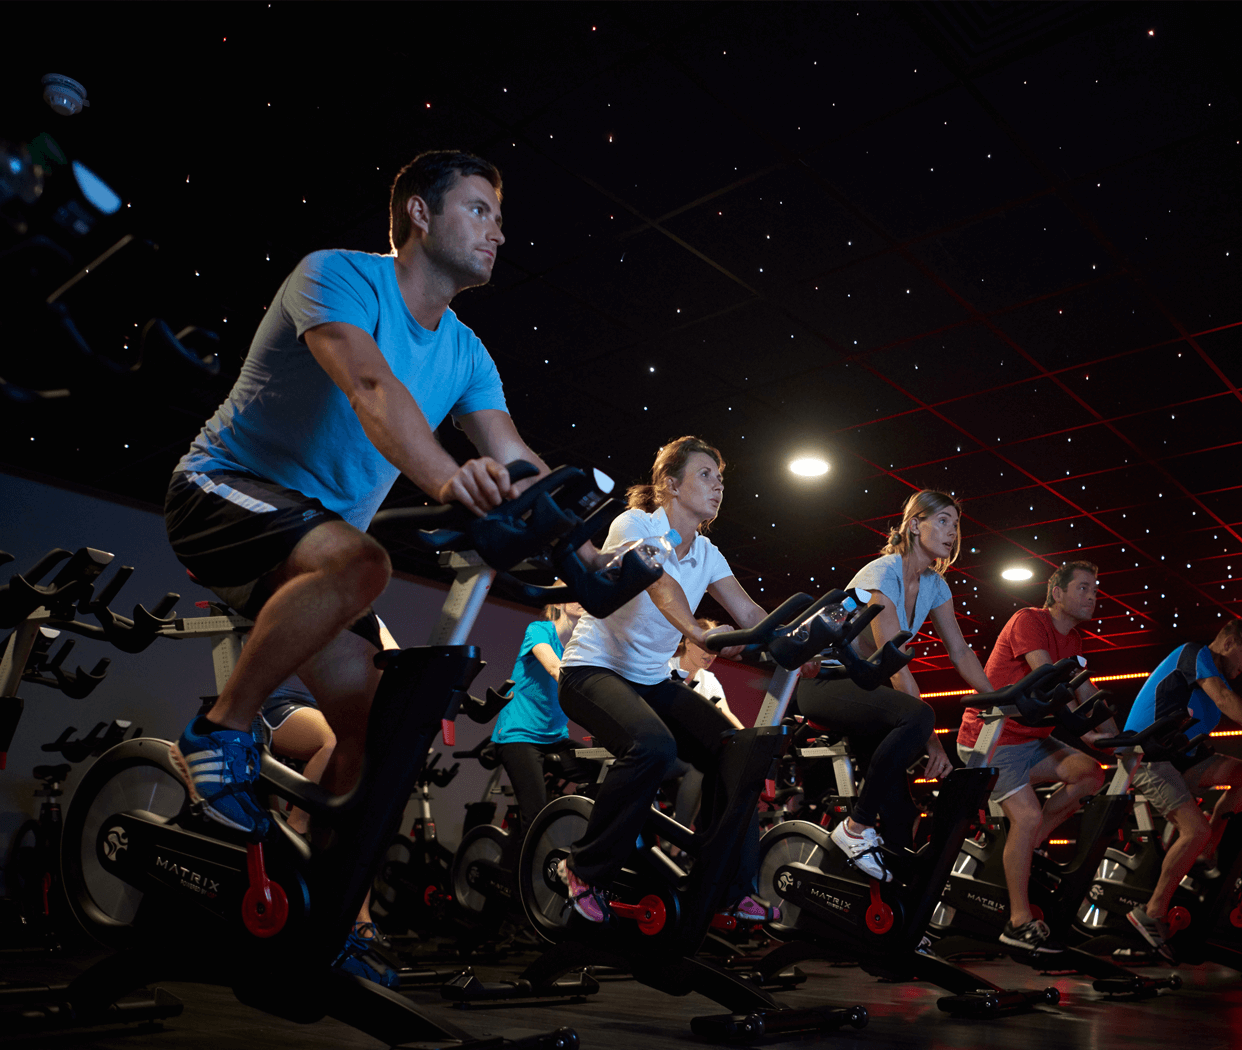 Les Mills RPM™ Virtual- Learn the moves